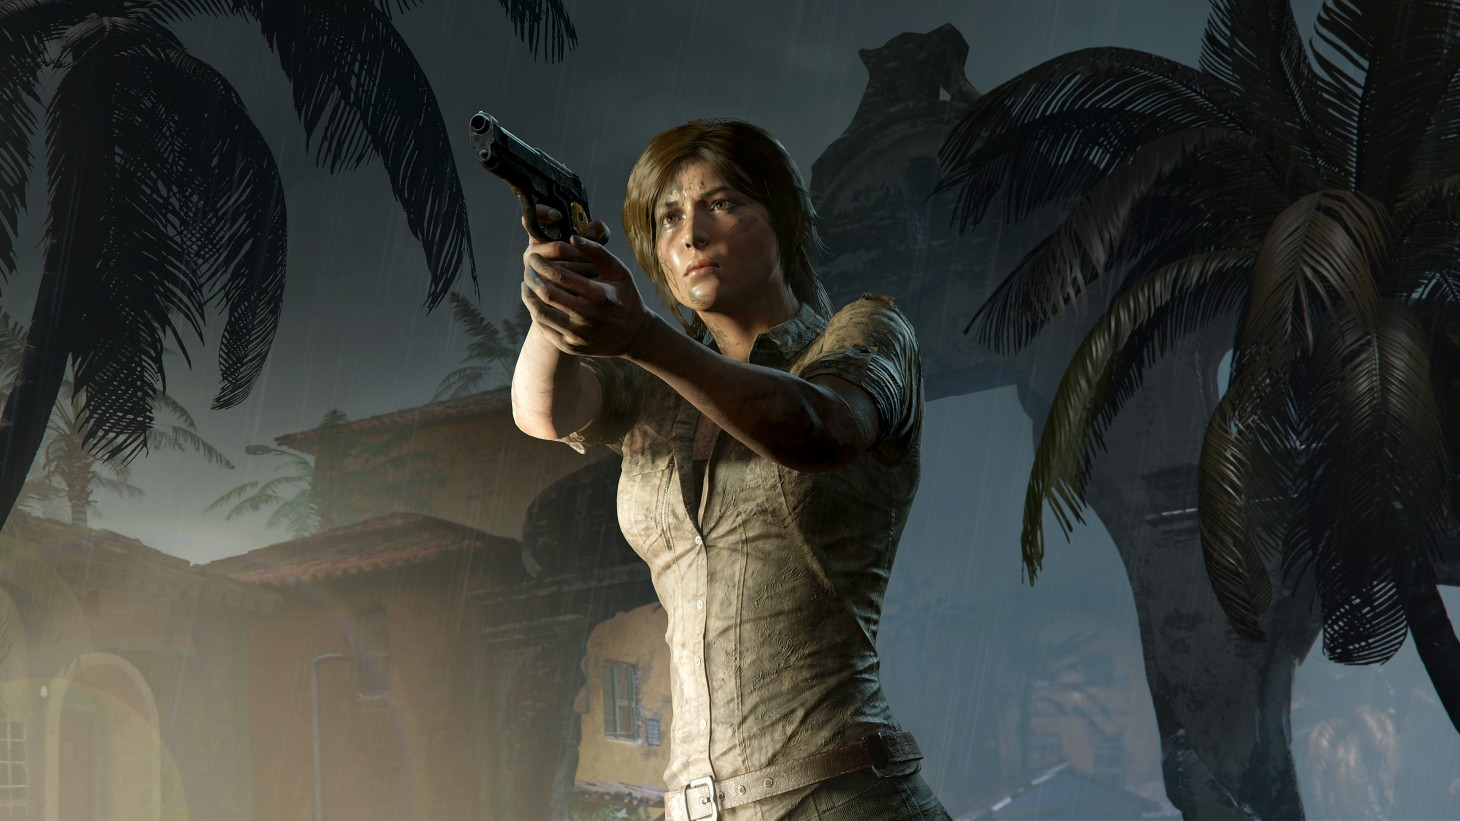 How Lara Croft Has Evolved In Shadow Of The Tomb Raider - Game Informer